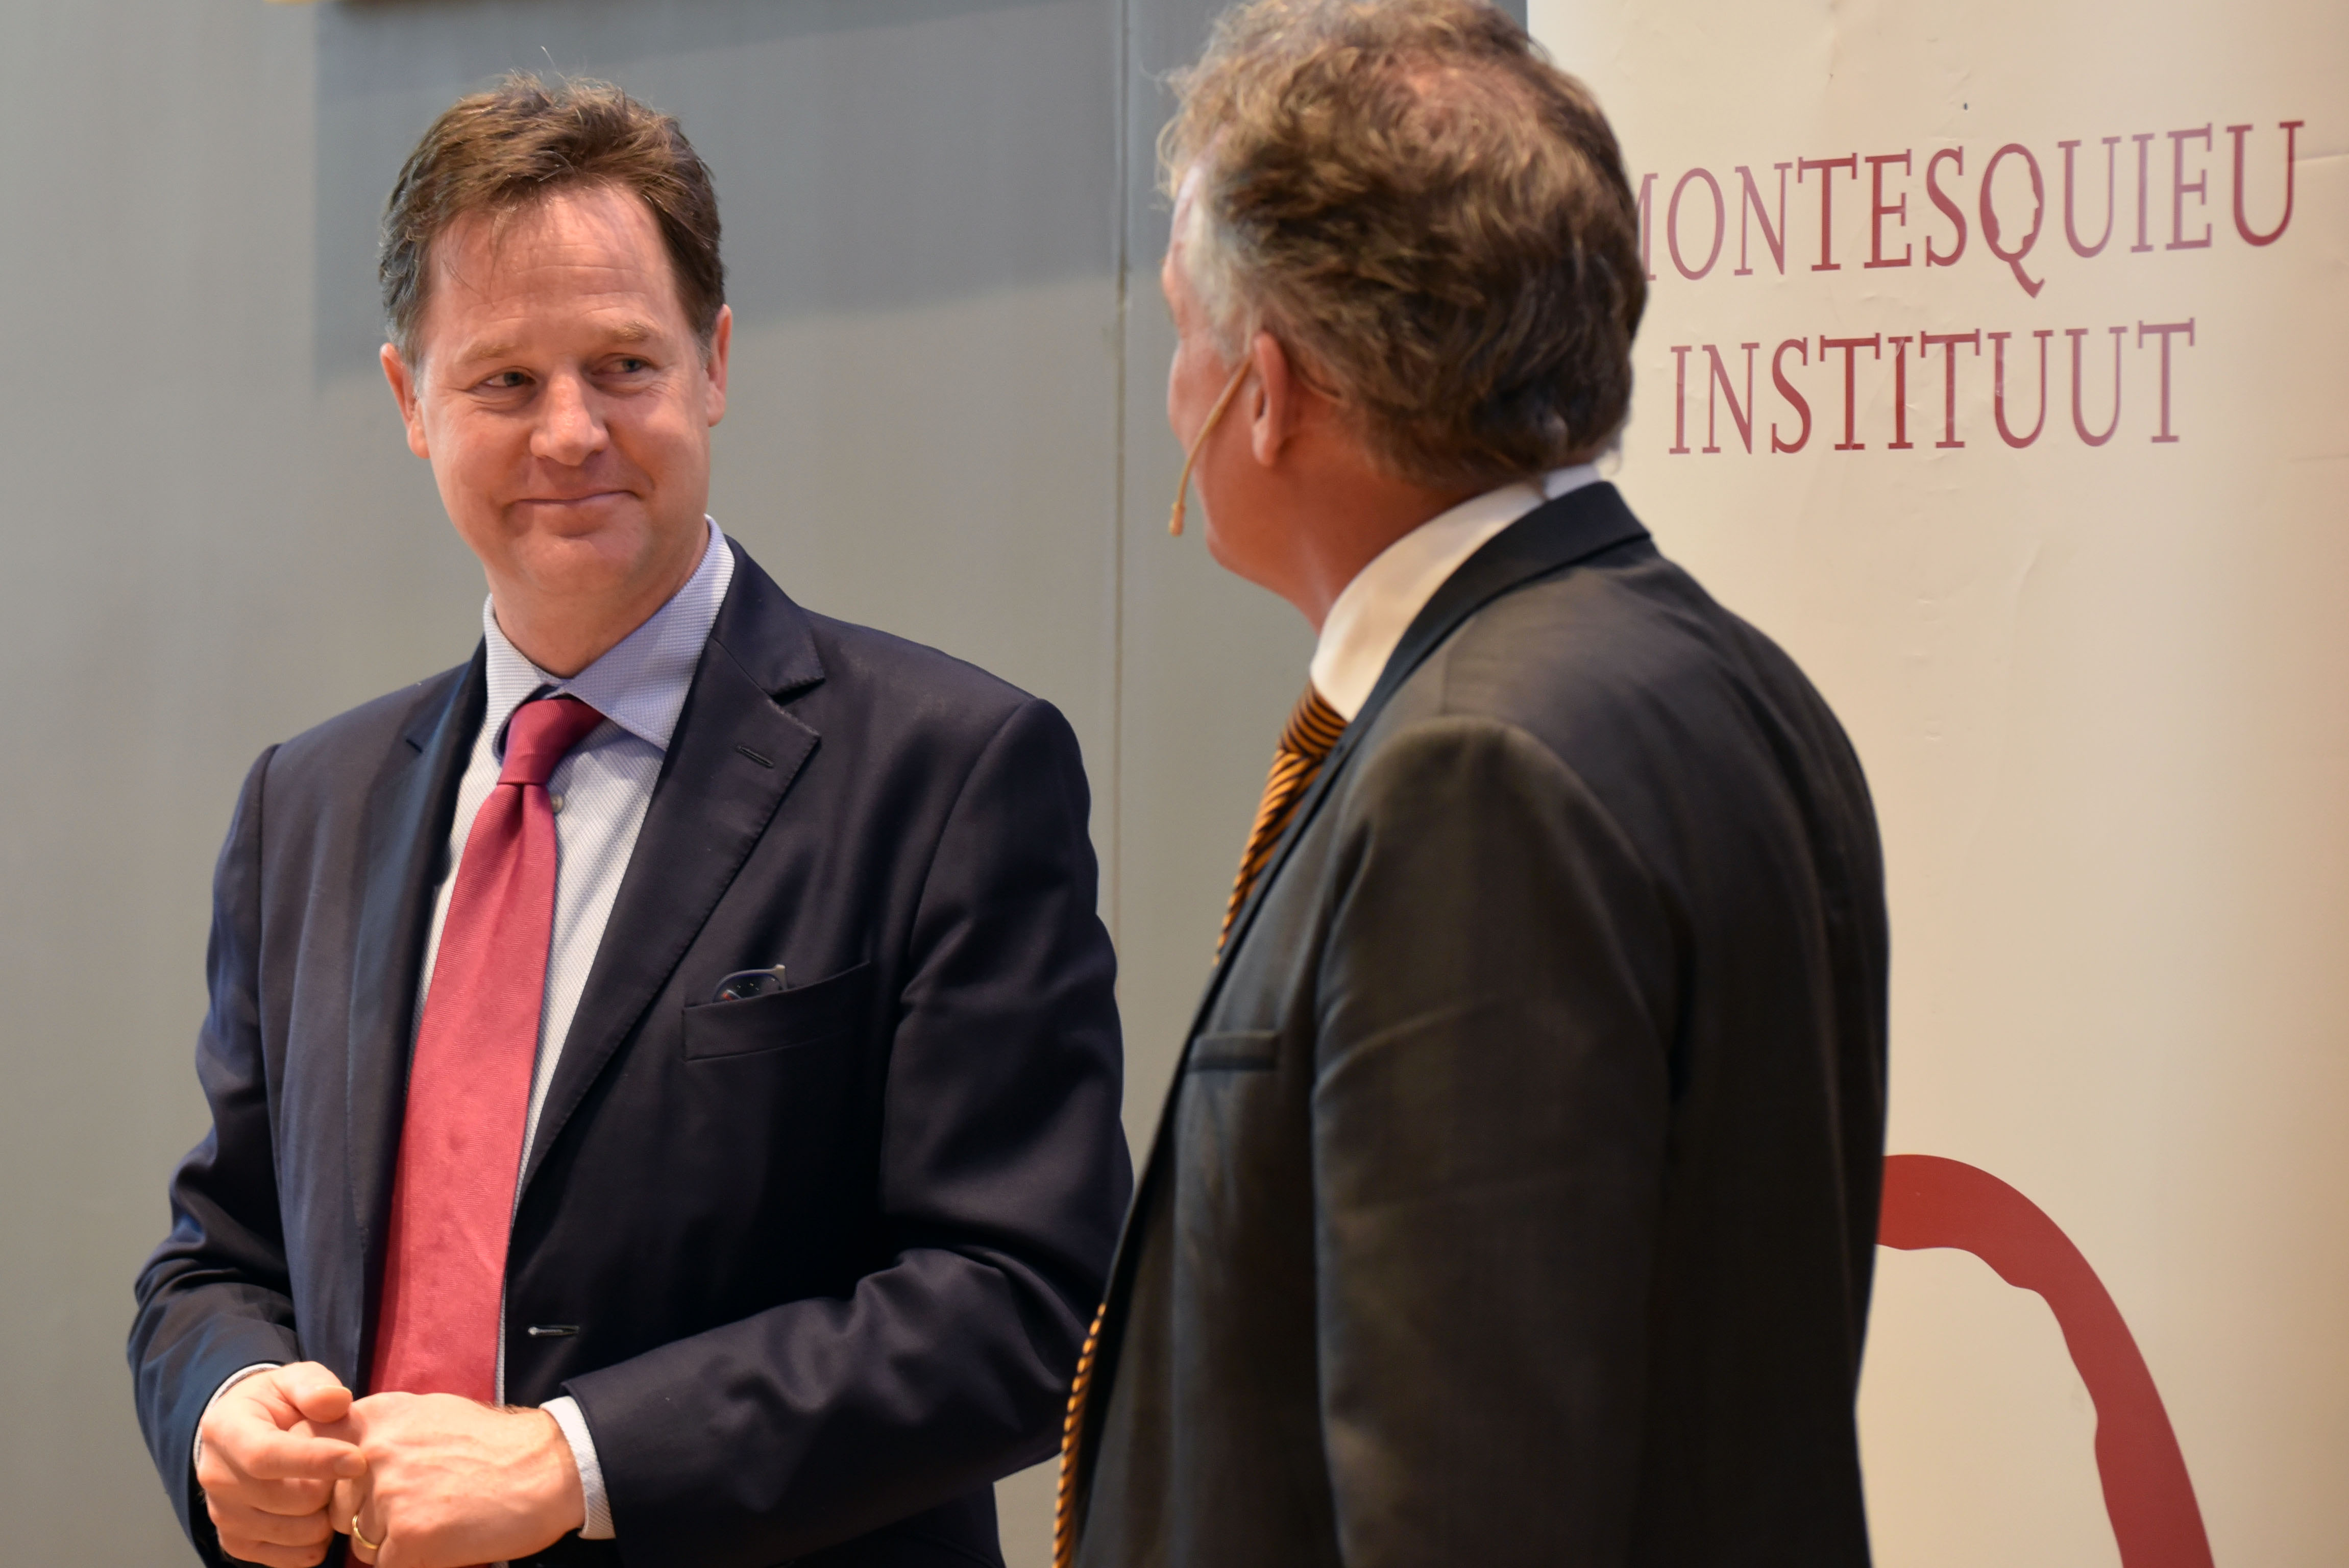 Nick Clegg and Bernard Steunenberg